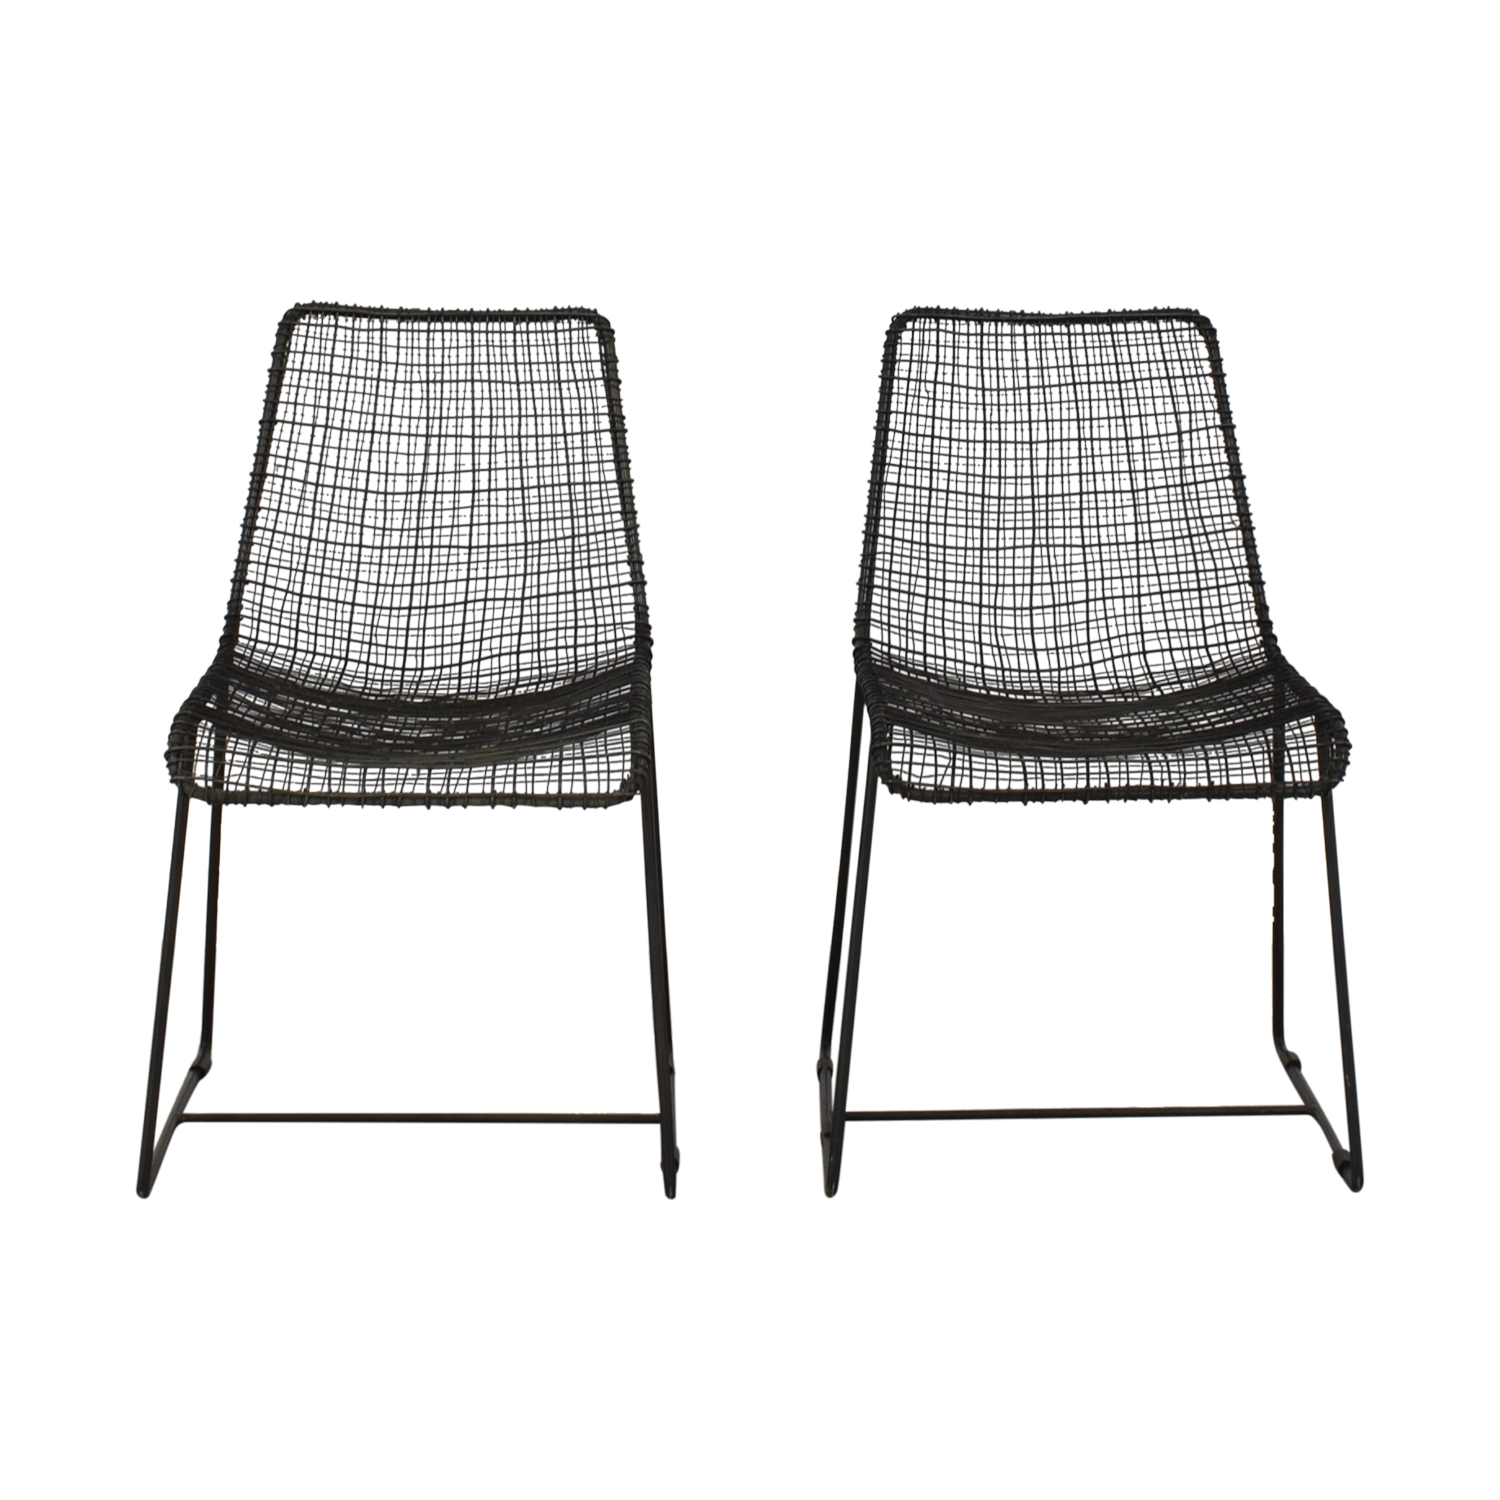 CB2 CB2 Modern Metal Wire Chairs nj